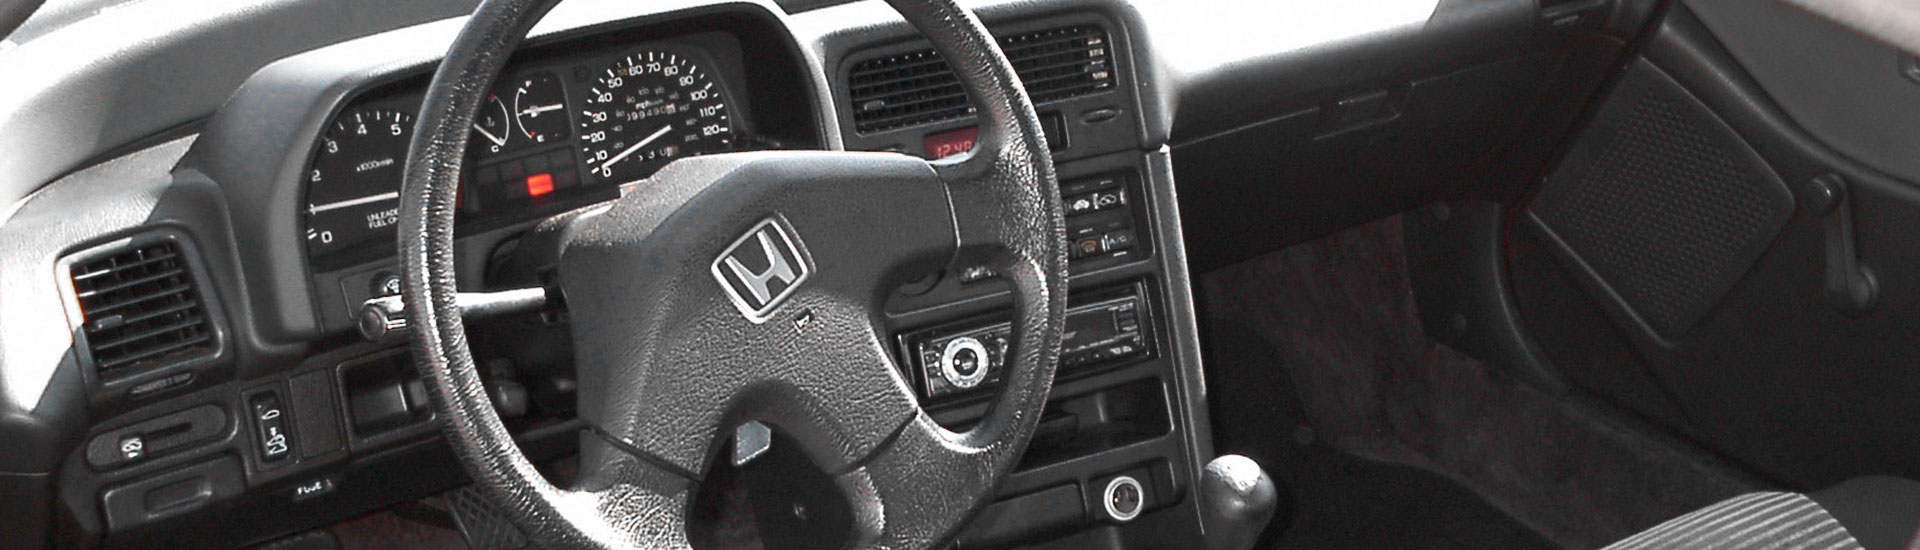 Honda CRX Custom Dash Kits